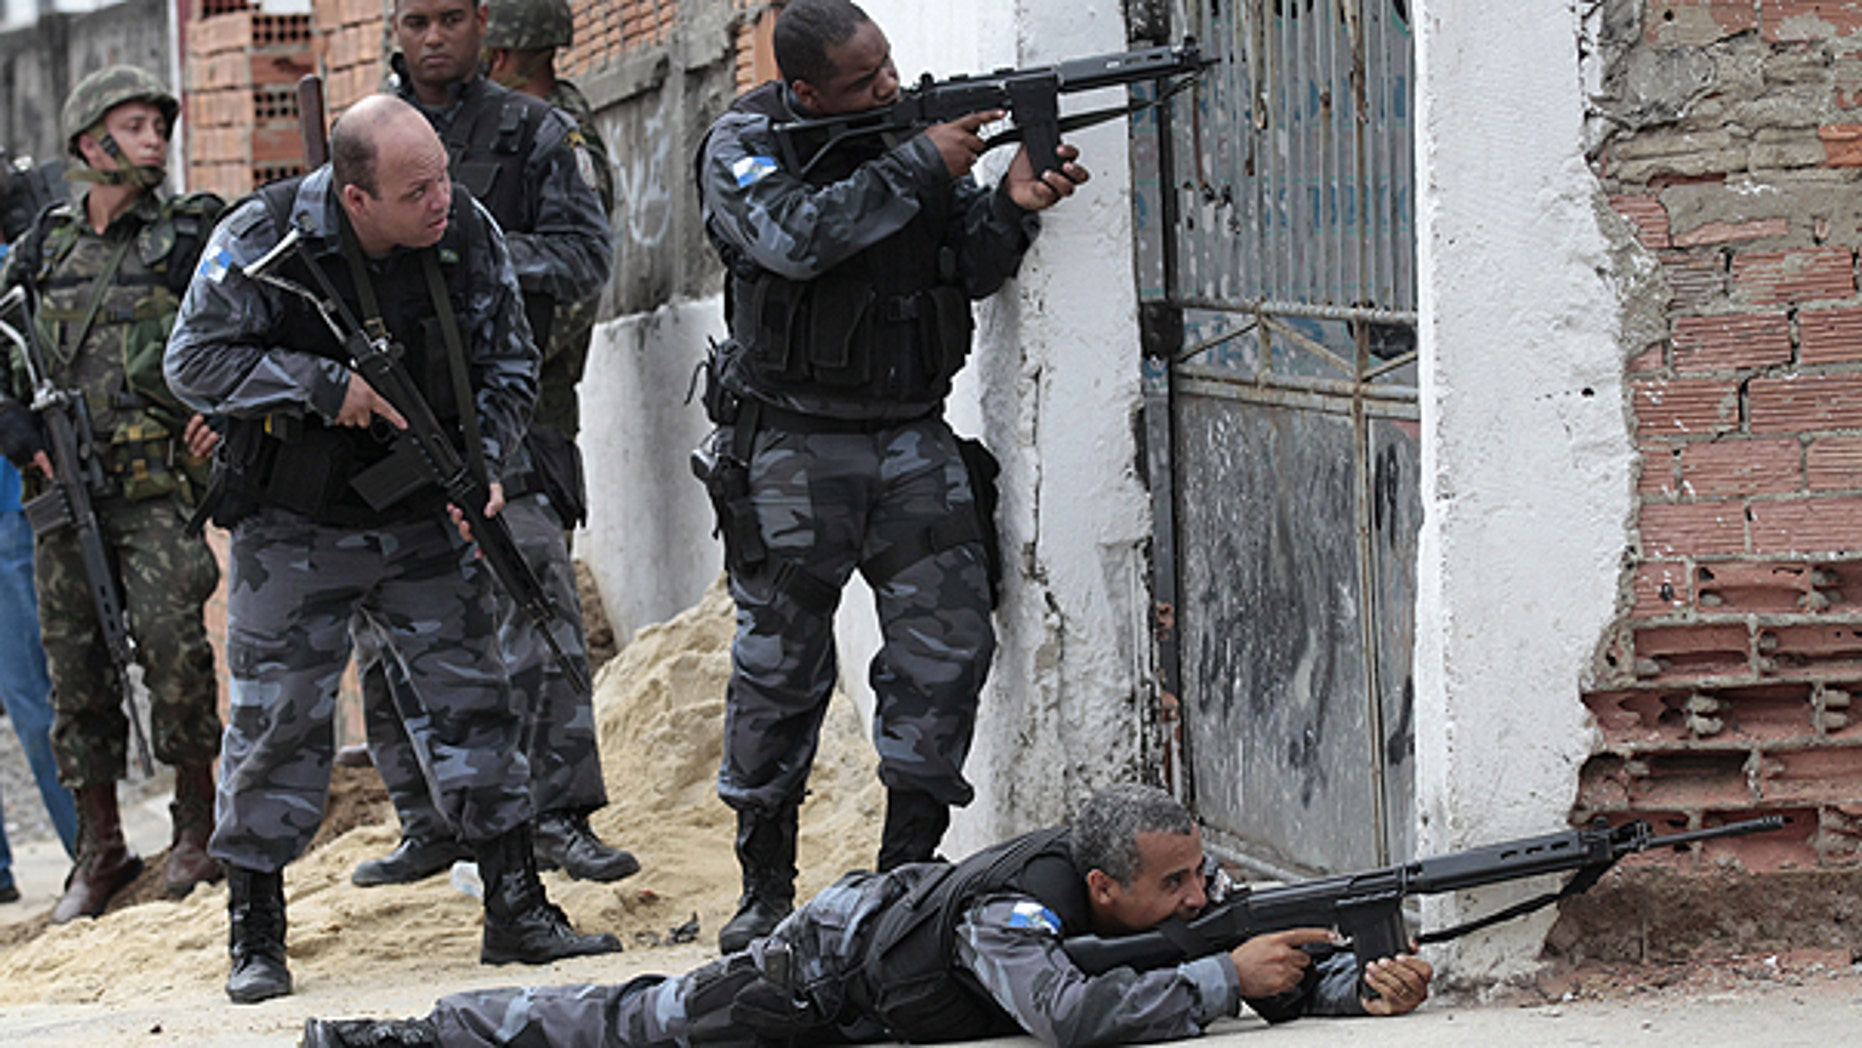 Nov. 26: Policemen take position during an operation against drug traffickers at the Complexo de Alemao slum in Rio de Janeiro, Brazil.